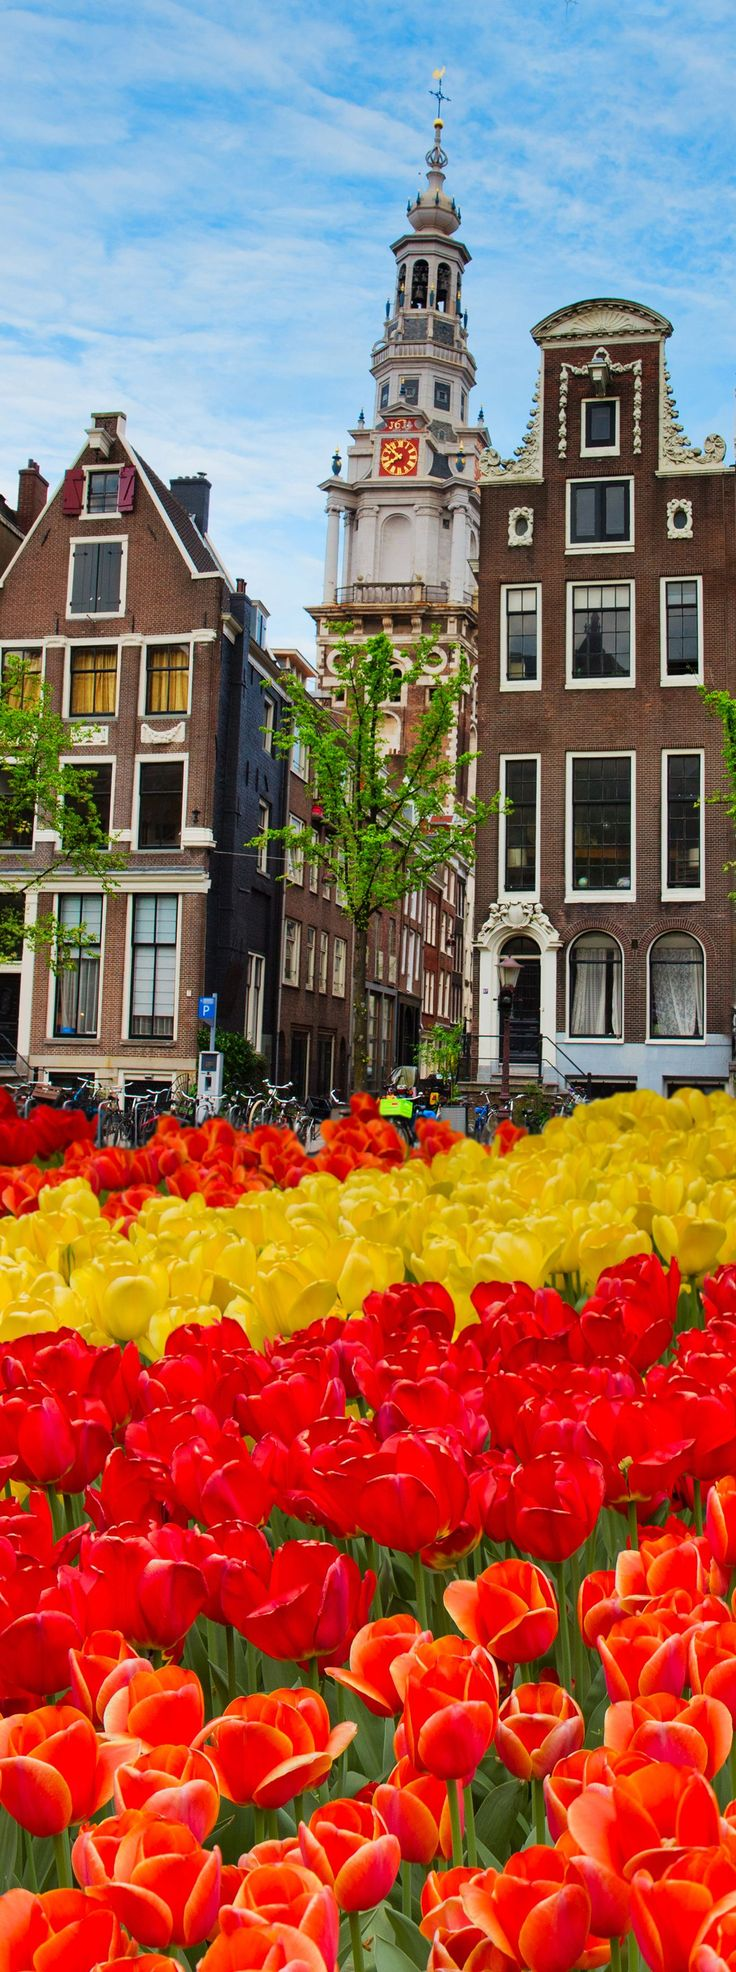 Tulips and frontages of old buildings in Amsterdam, Netherlands